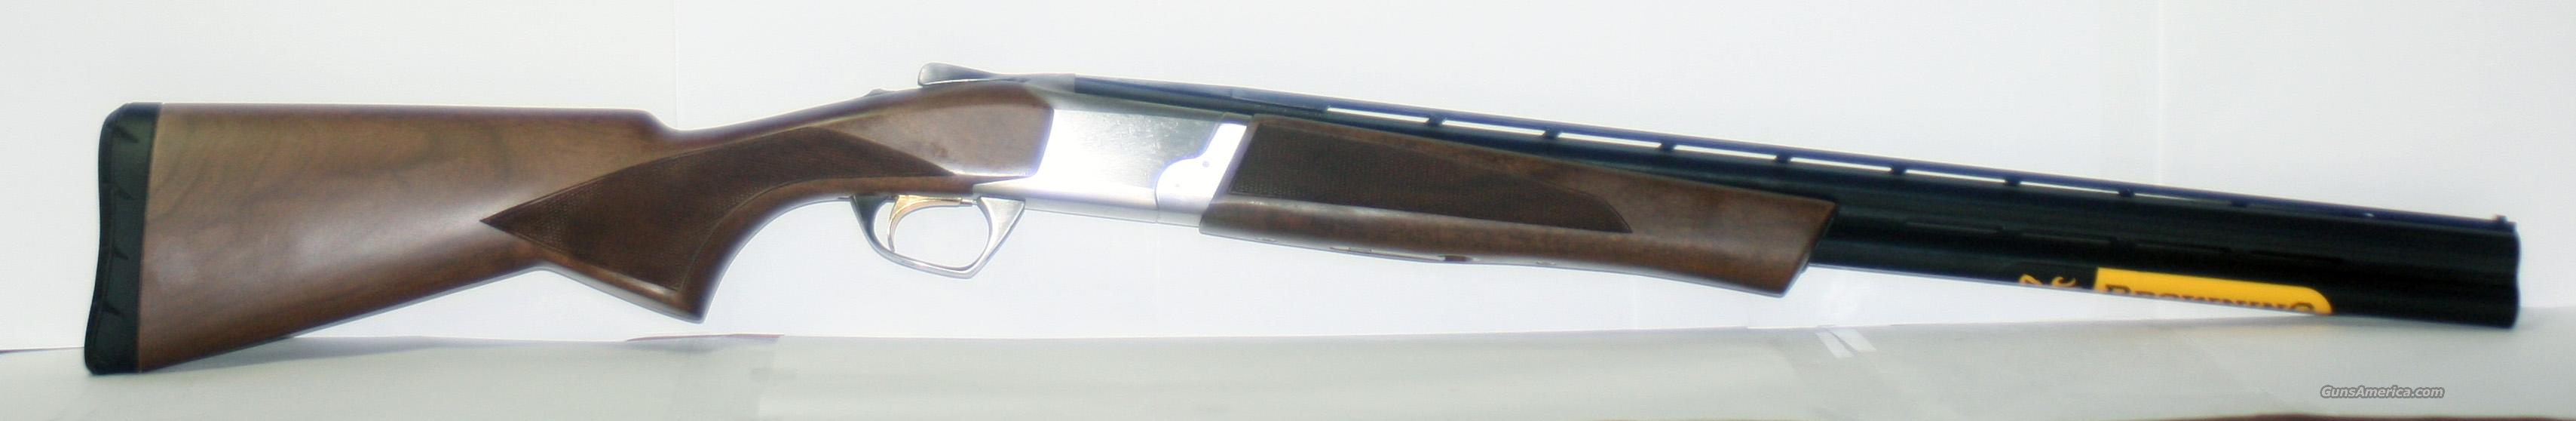 "BROWNING CYNERGY SATIN FIELD 12 GA 3"" 26"" INVECTOR PLUS NEW IN BOX  Guns > Shotguns > Browning Shotguns > Over Unders > Cynergy > Hunting"